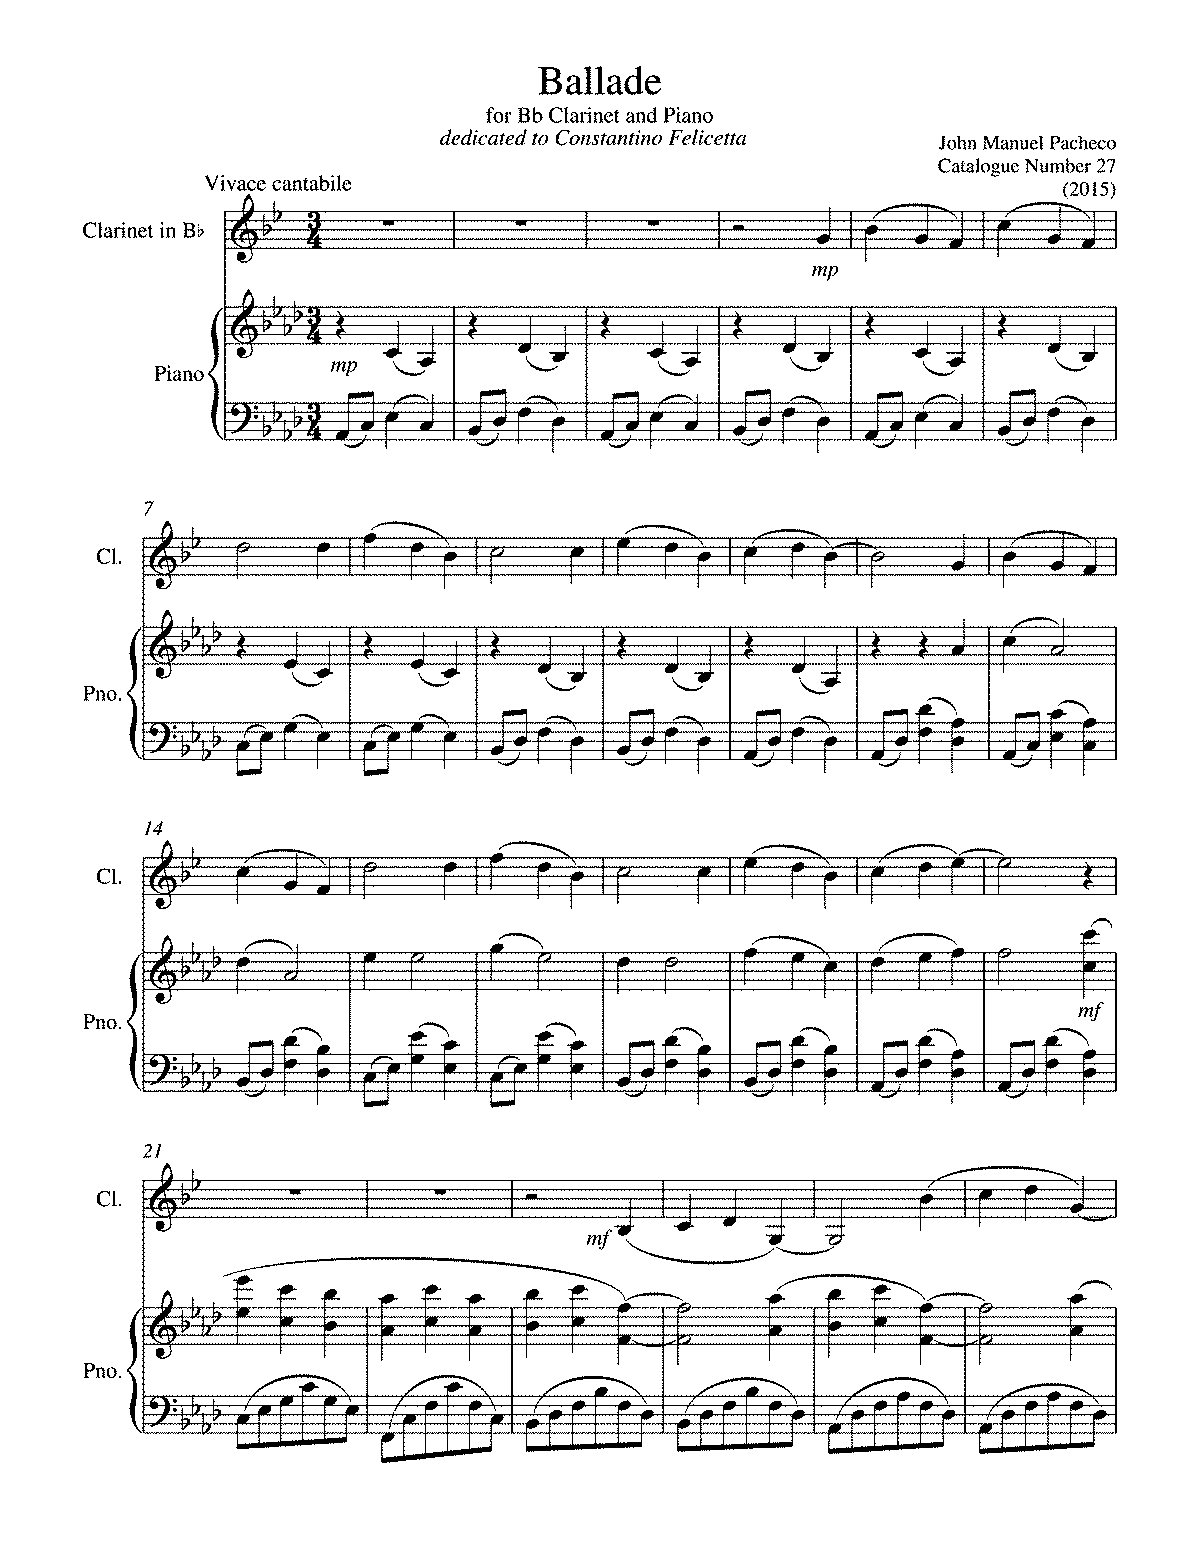 PMLP629299-Pacheco- Ballade for Clarinet and Piano.pdf